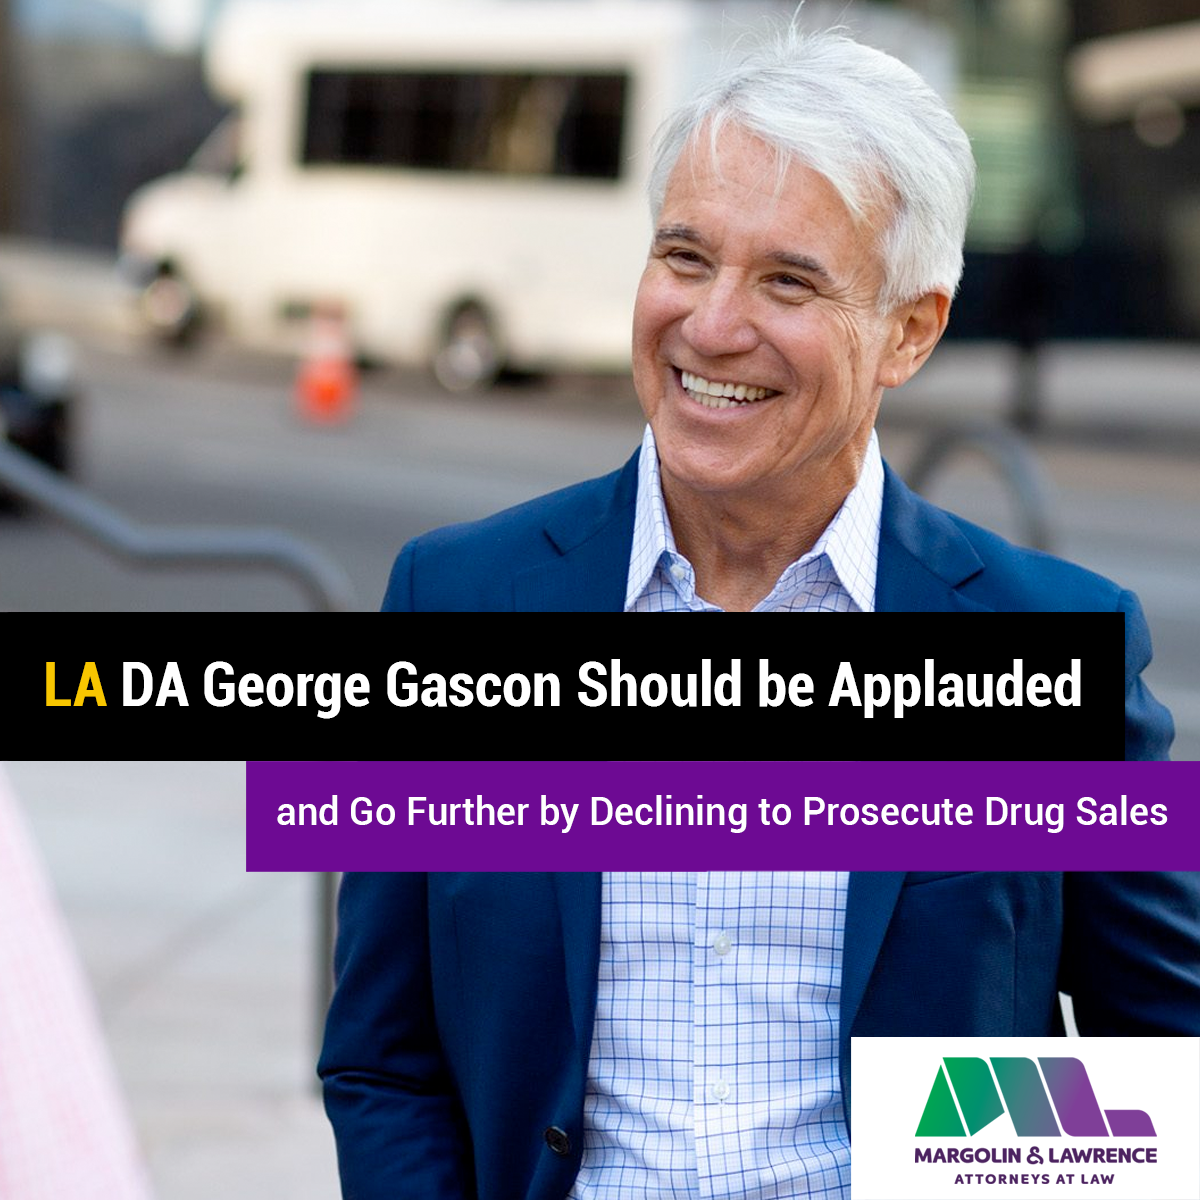 LA DA George Gascon Should be Applauded, and Go Further by Declining to Prosecute Drug Sales